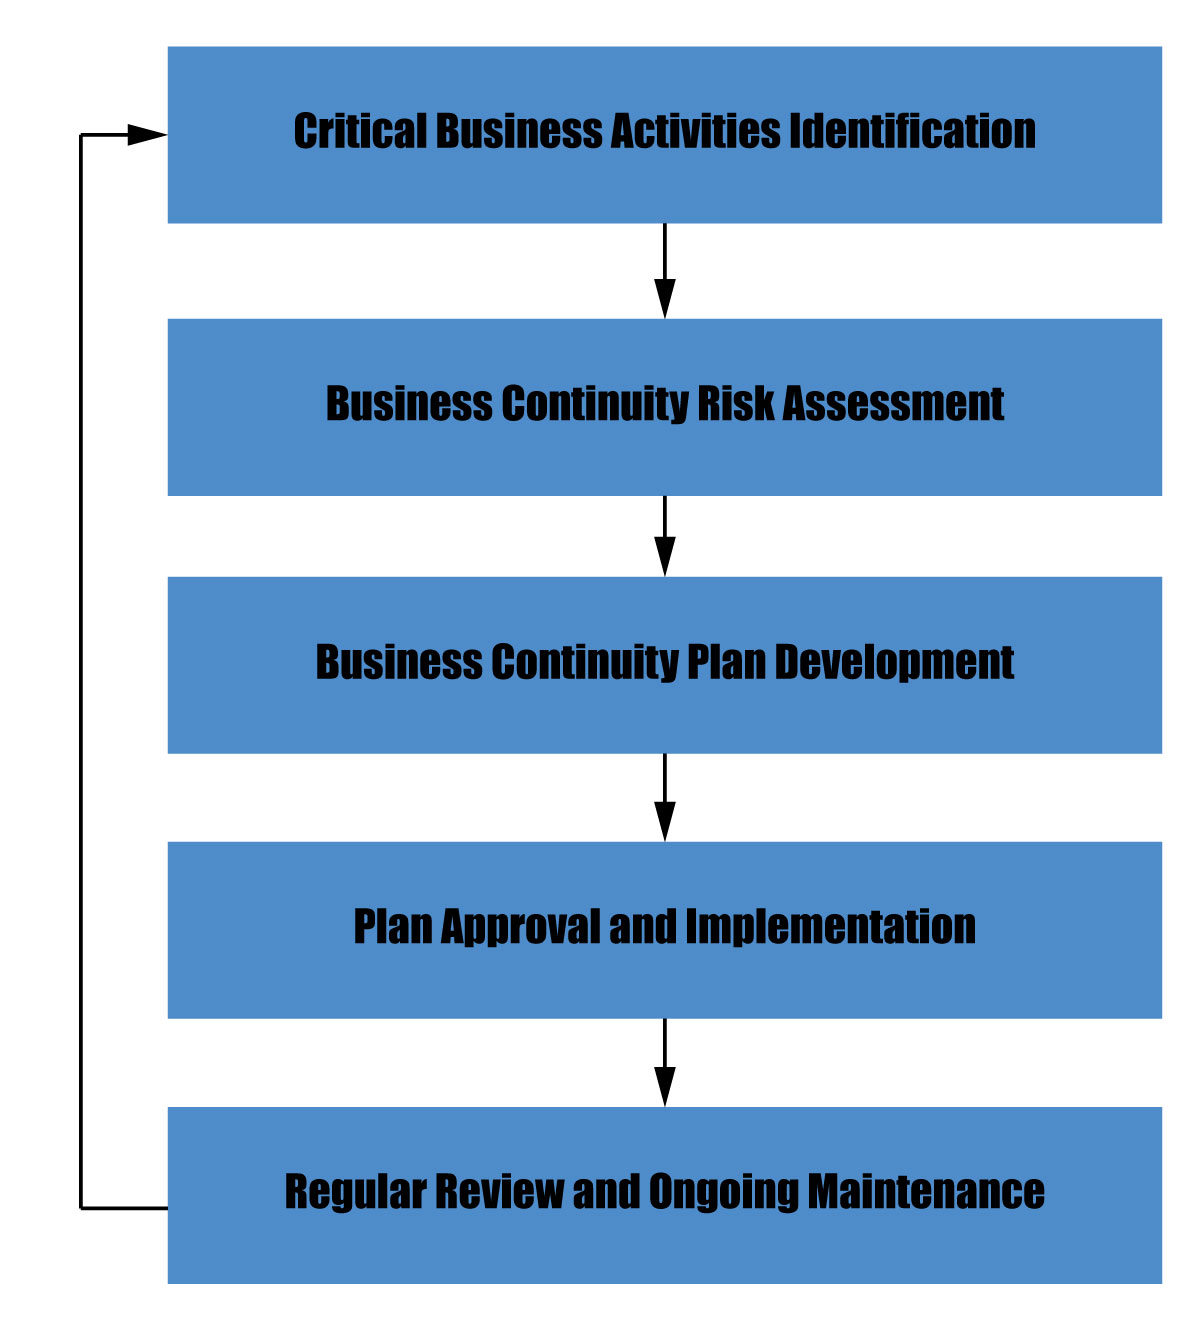 Major Processes of Business Continuity Planning